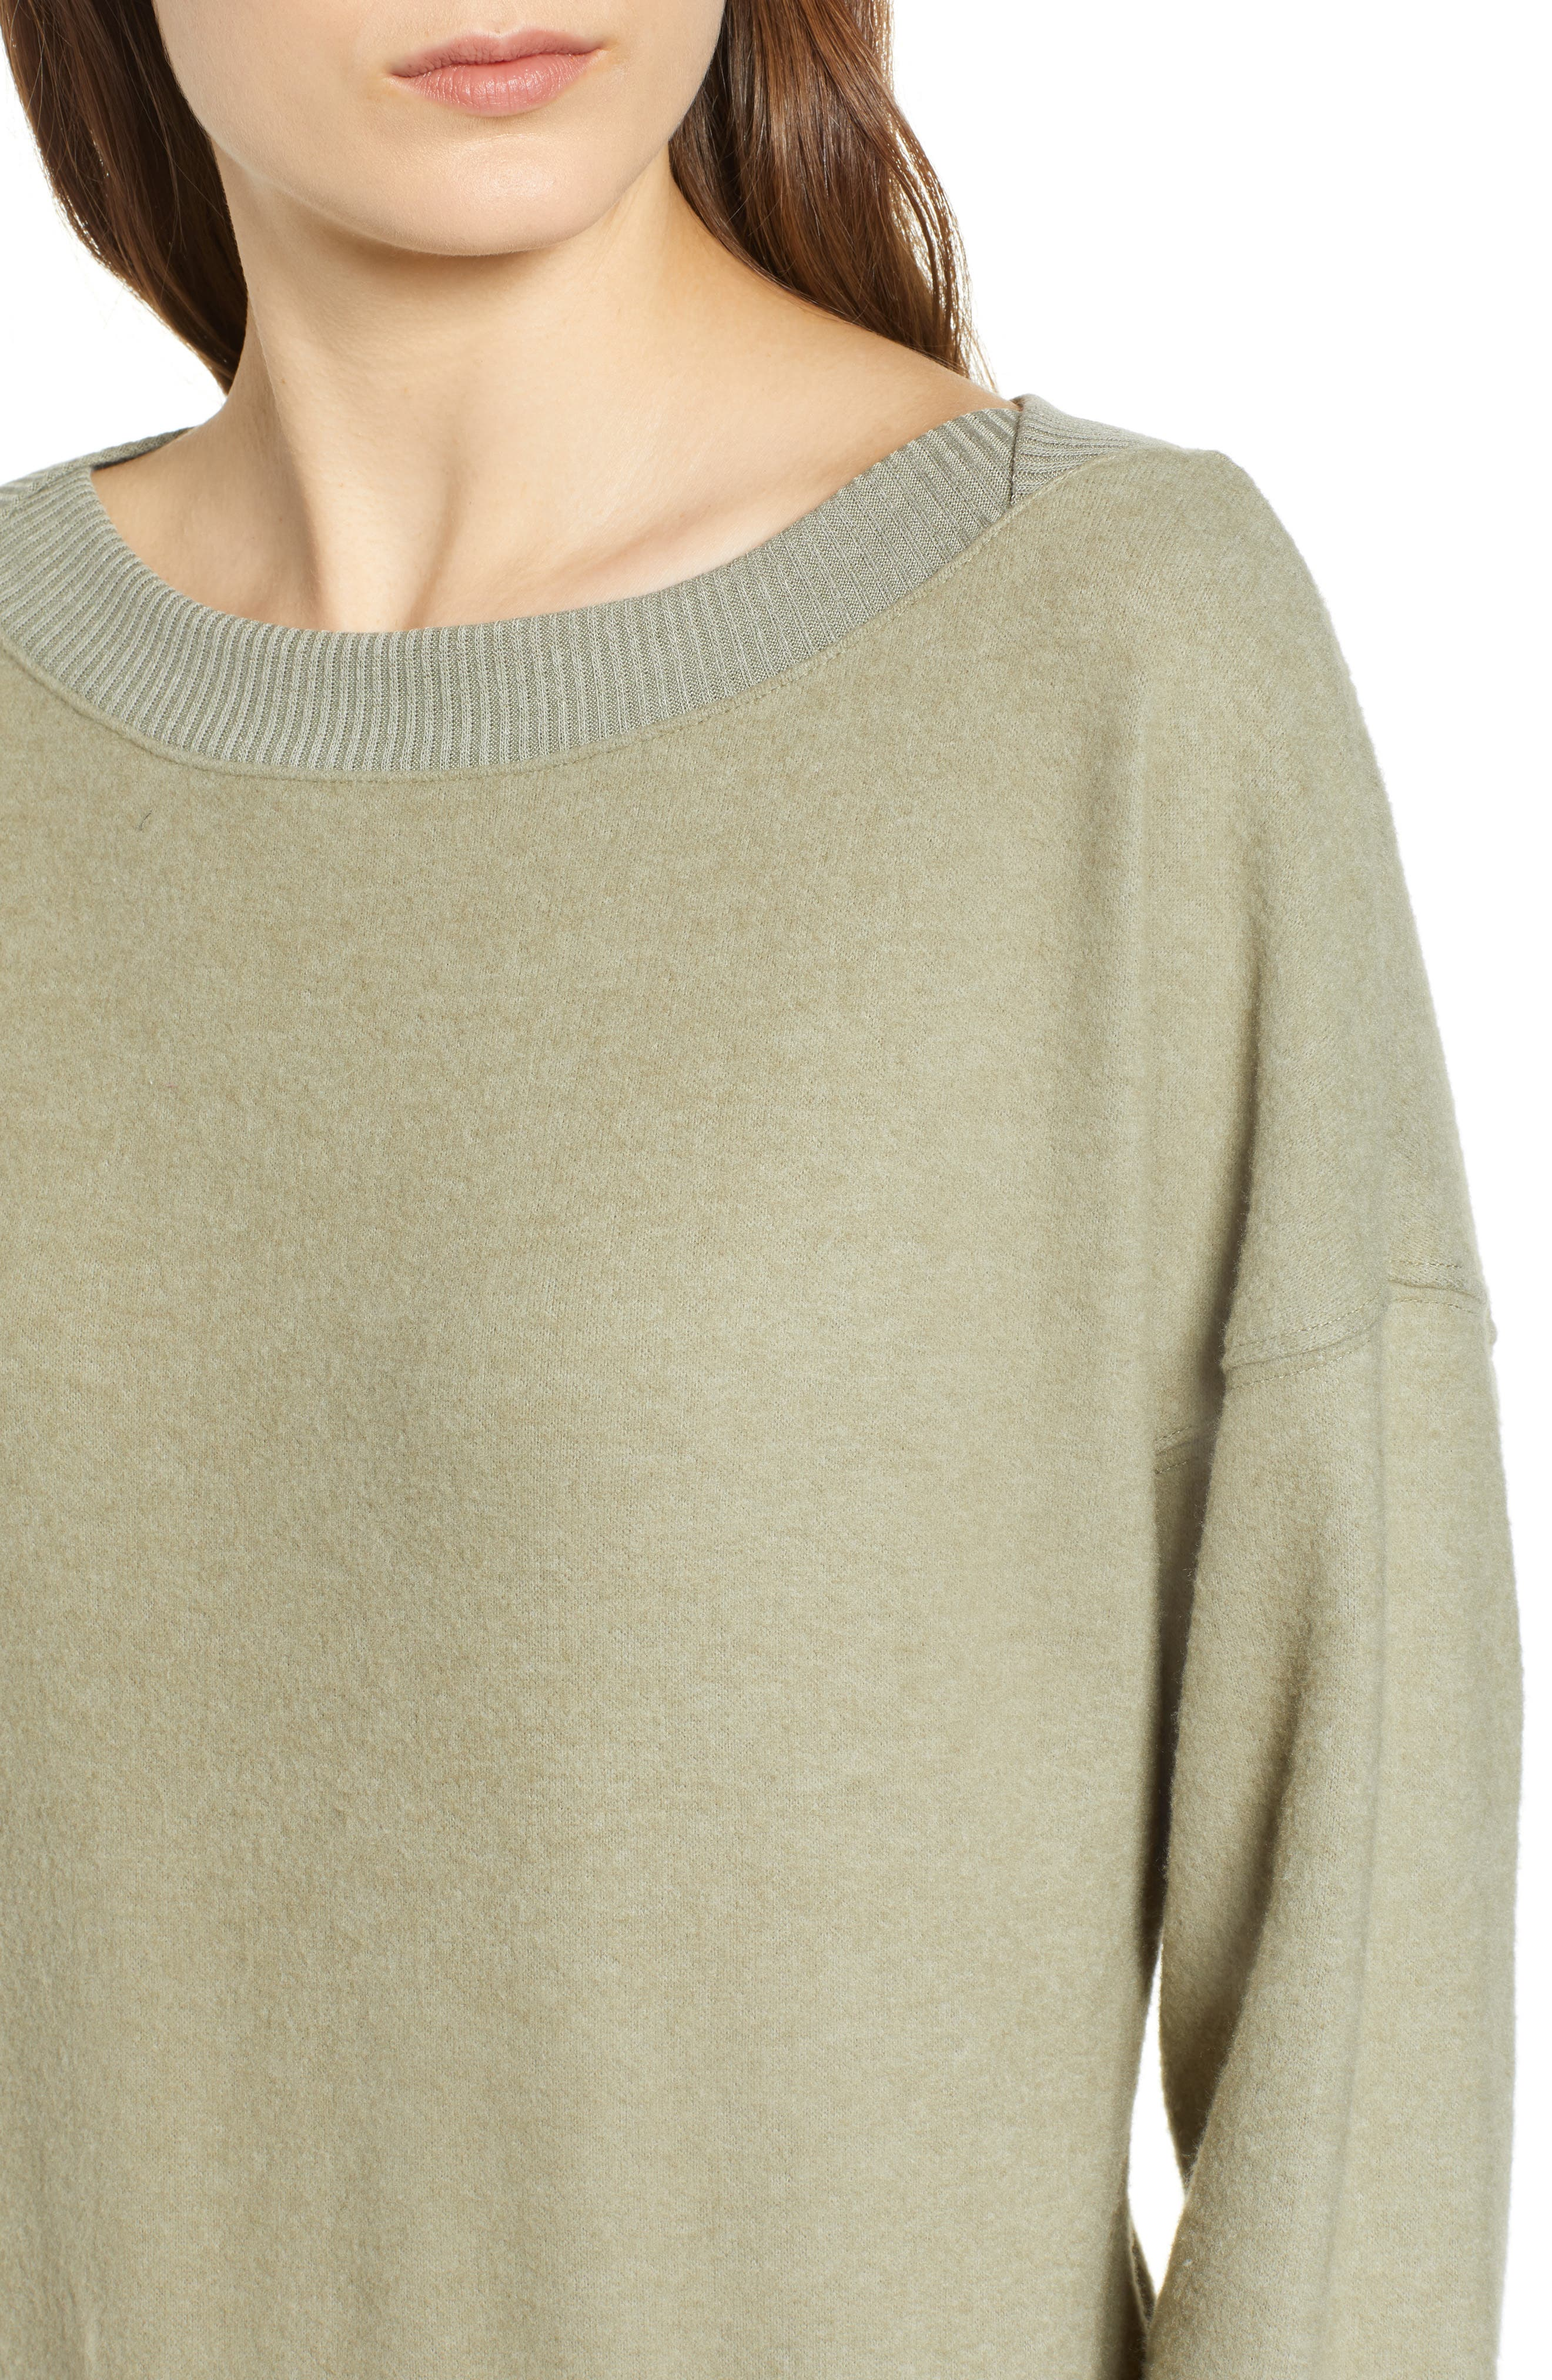 Darwin Cozy Sweatshirt,                             Alternate thumbnail 4, color,                             CAPERS